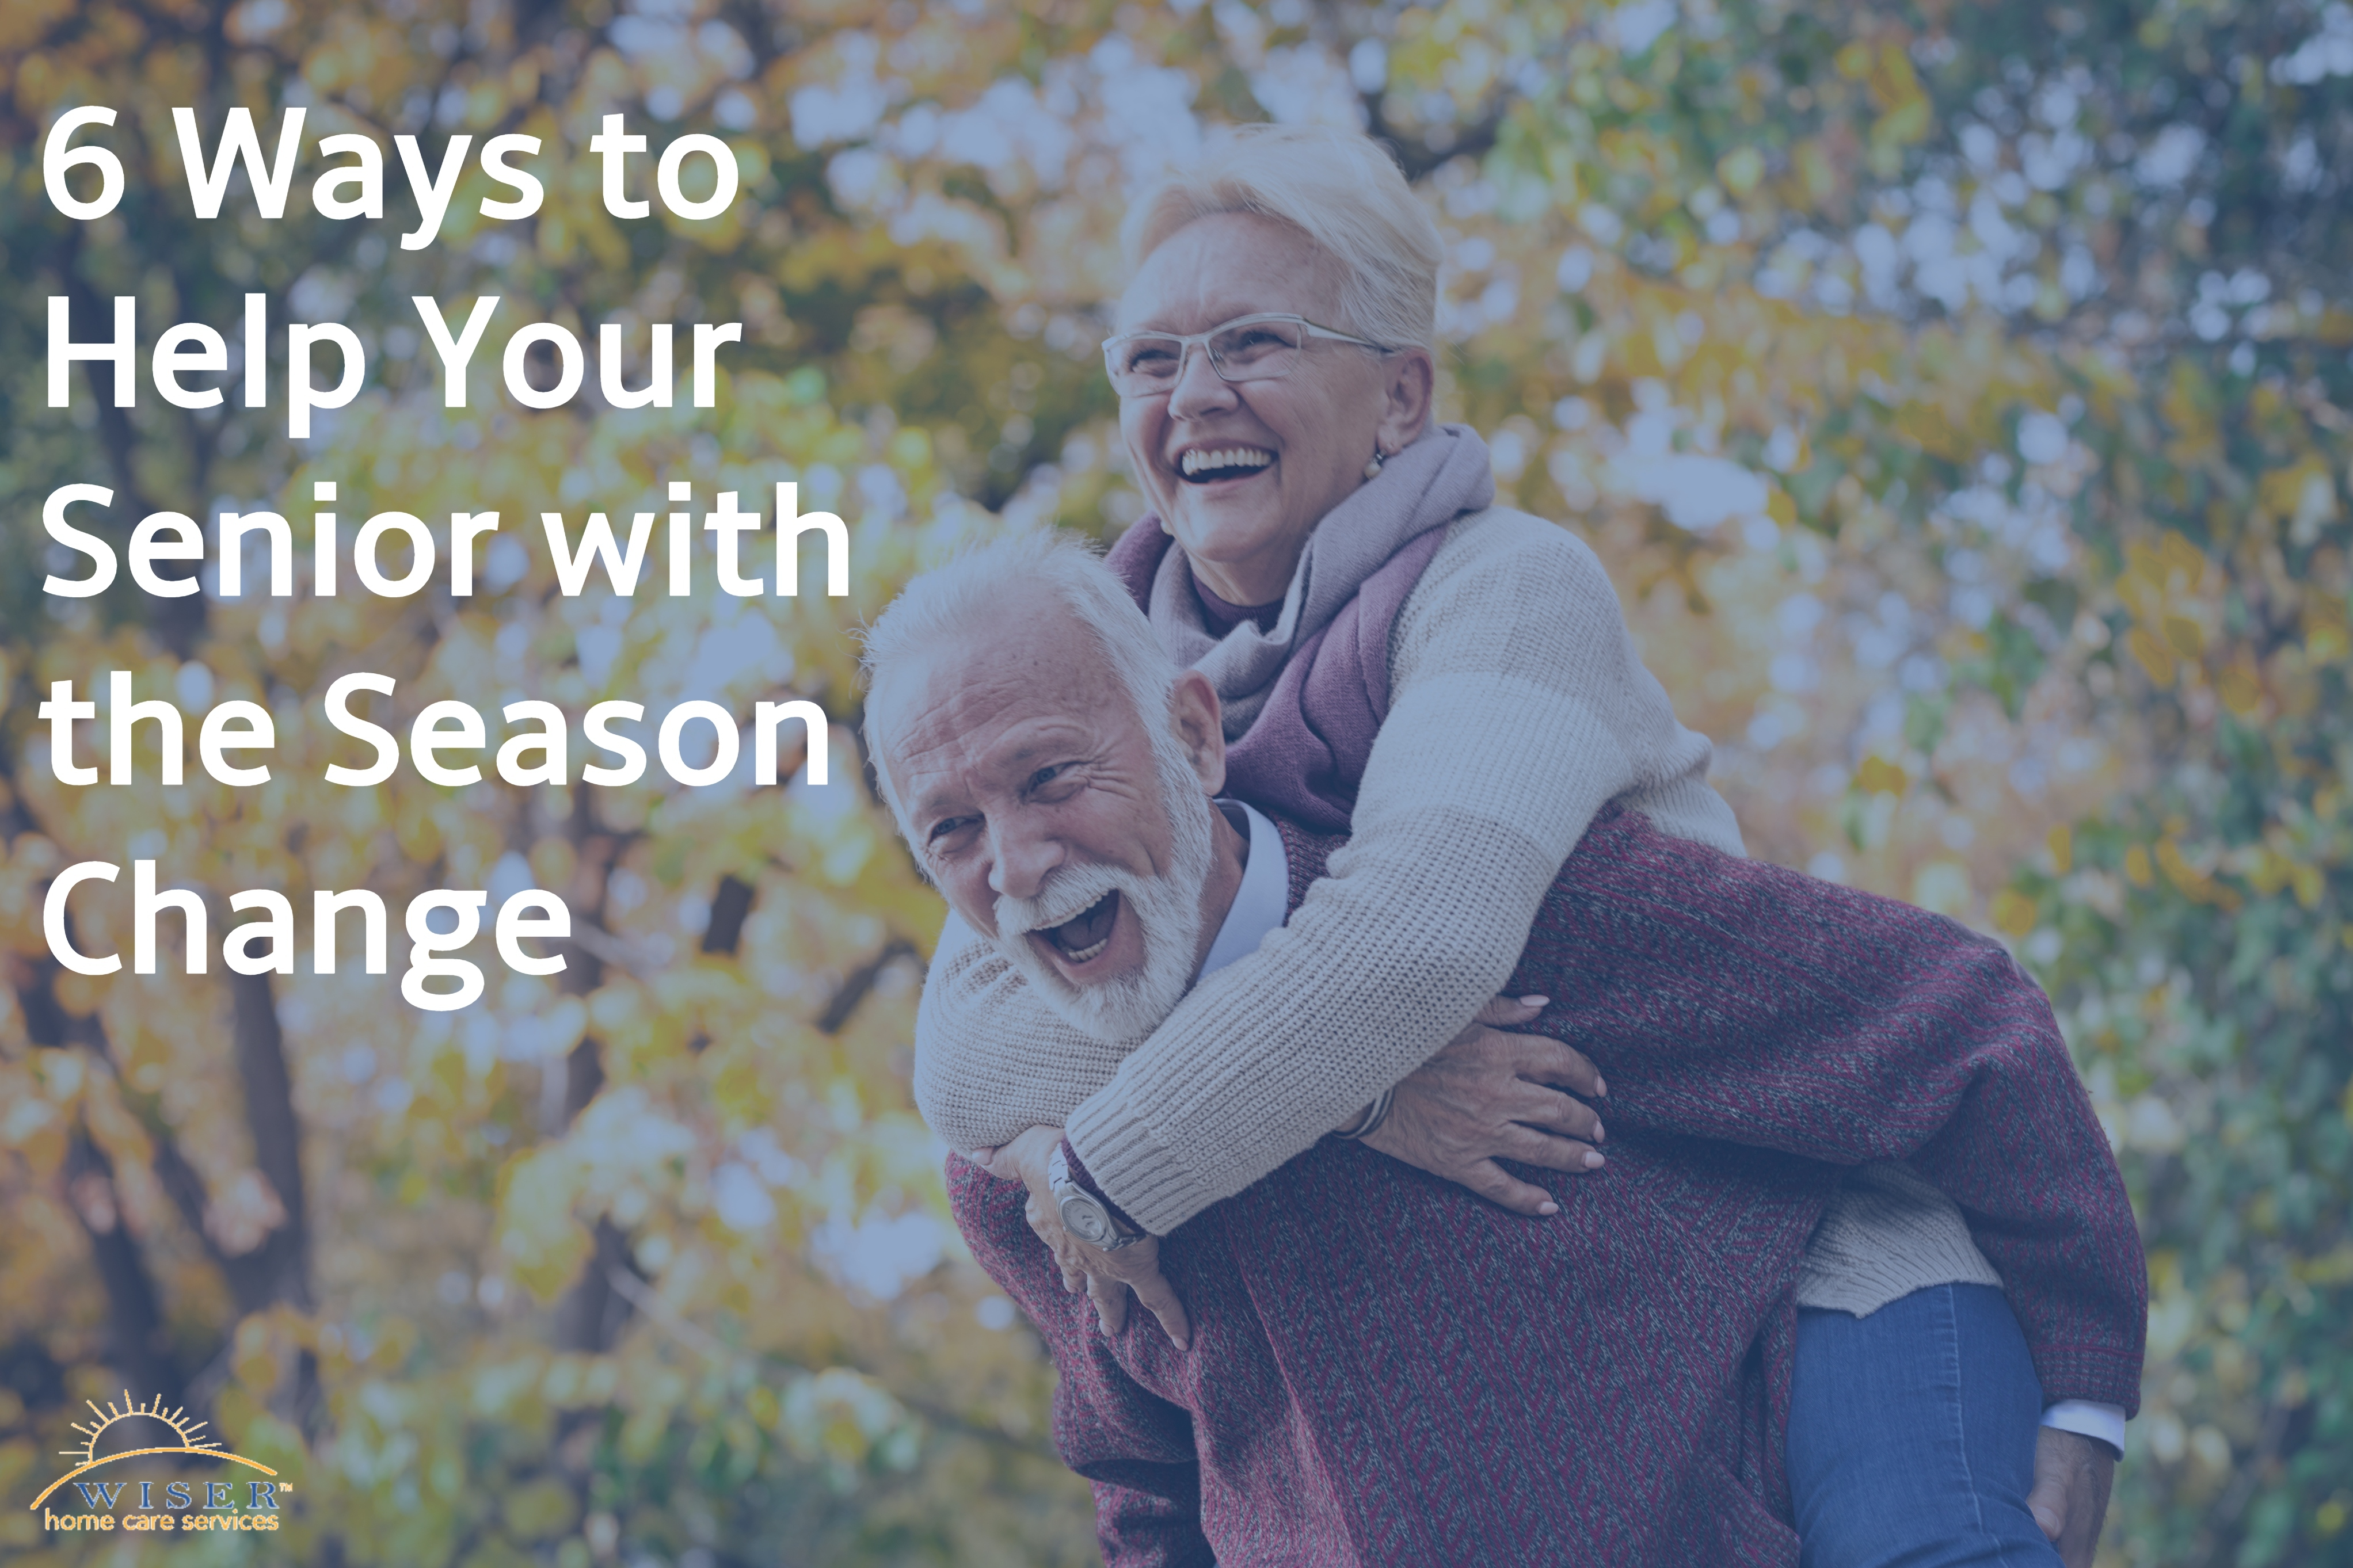 6 Ways to Help Your Senior with the Season Change